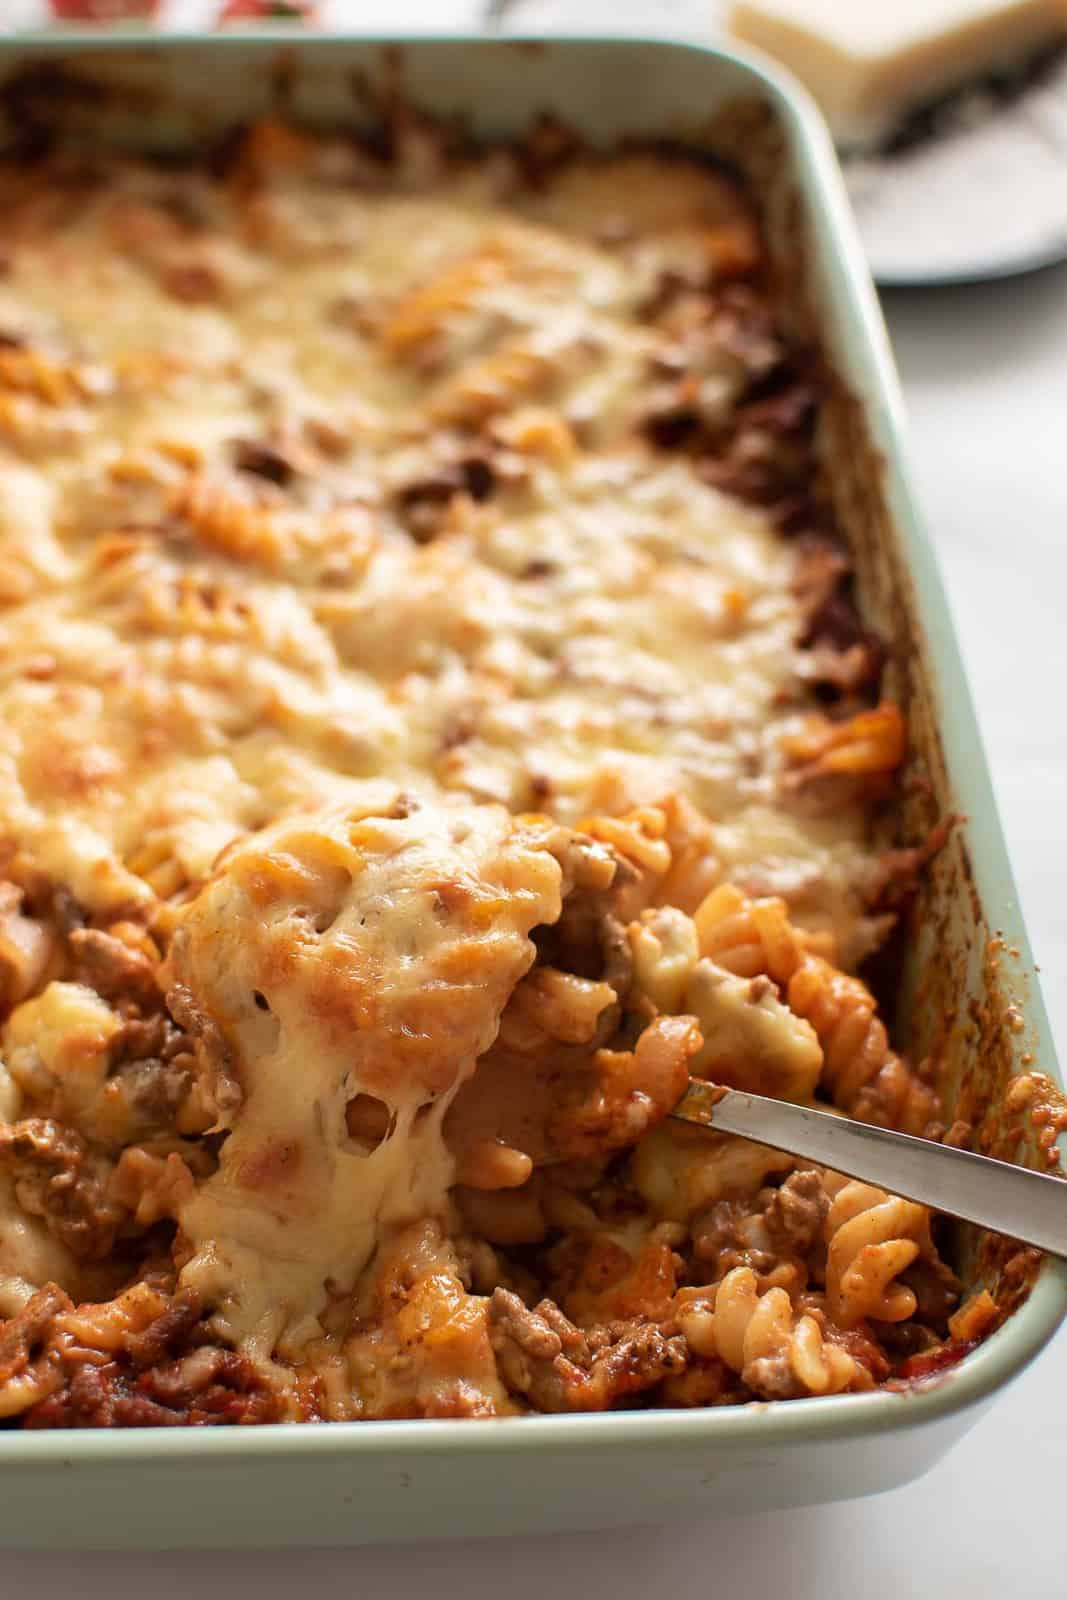 Cheesy hamburger casserole, with a spoon lifting up a serving.